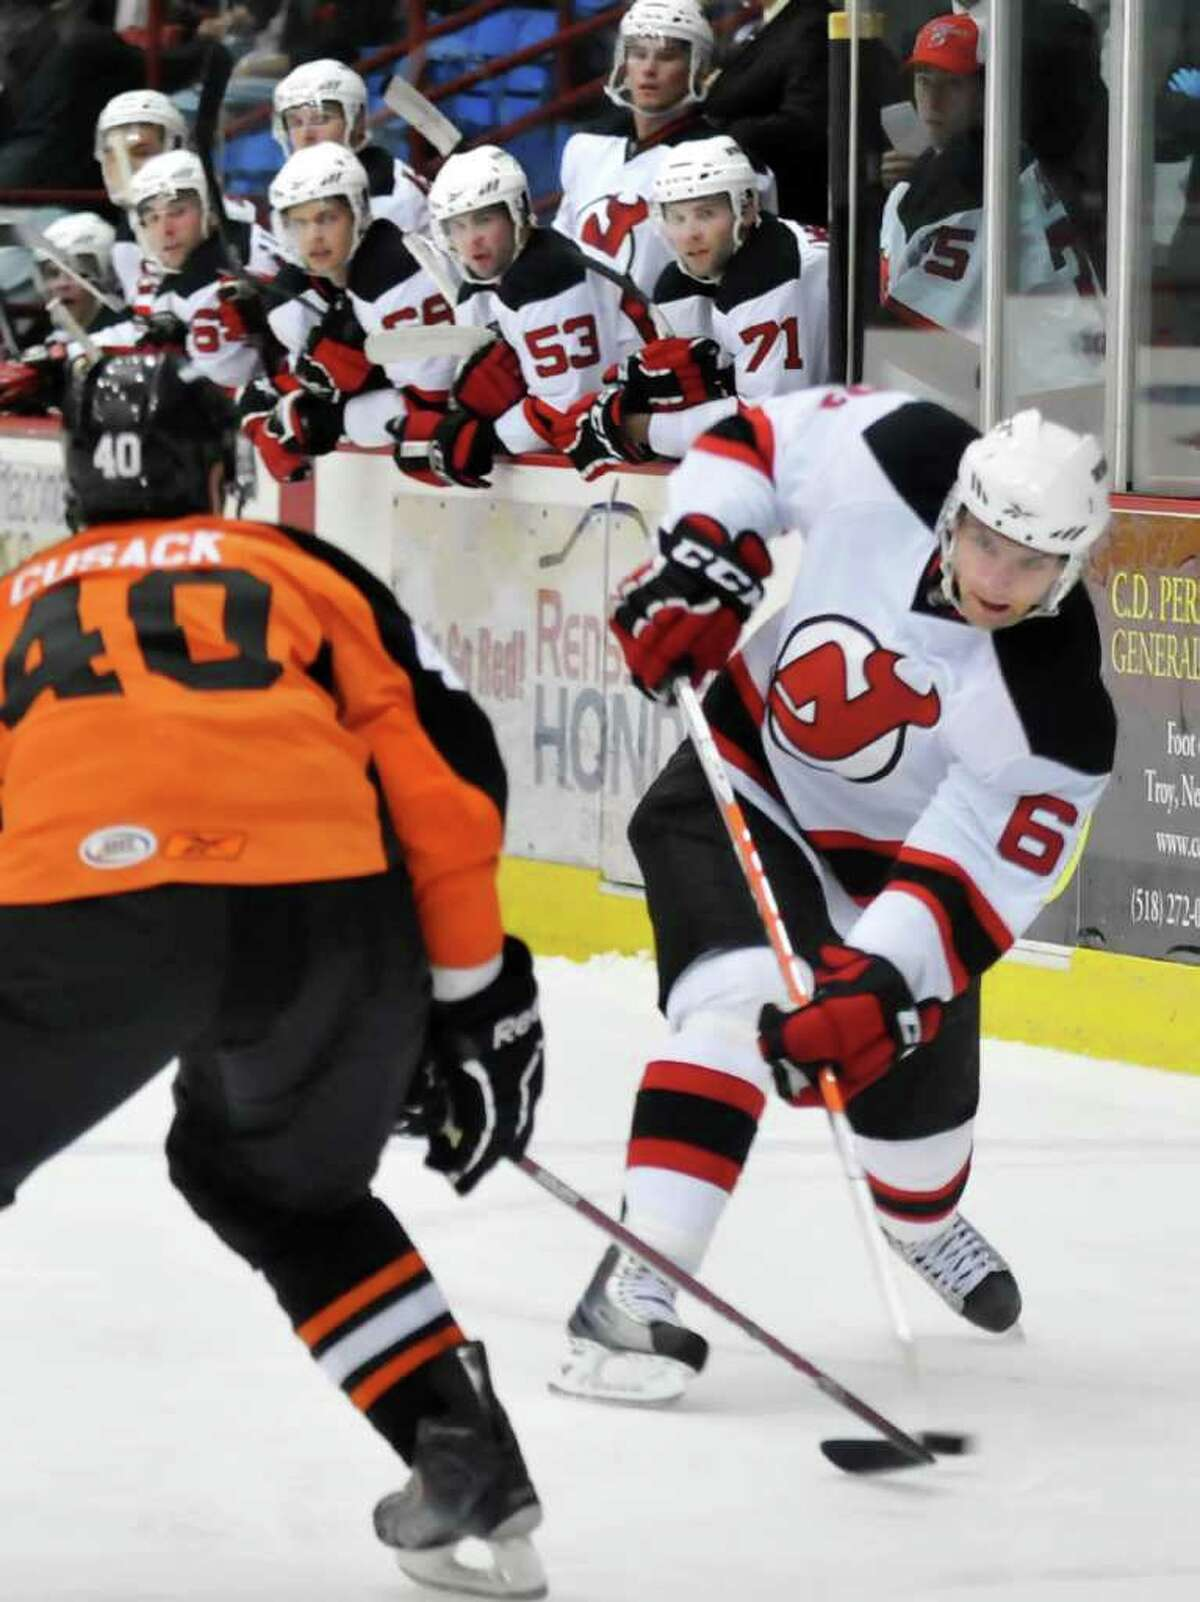 Darcy Zajac takes a shot on goal for the Albany Devils during their 4-2 victory over the Adirondack Phantoms on Saturday night in an American Hockey League exhibition game played at Houston Field House on the Rensselaer Polytechnic Institute campus in Troy. Adirondack's Patrick Cusack, left, defends. (John Carl D'Annibale / Times Union)